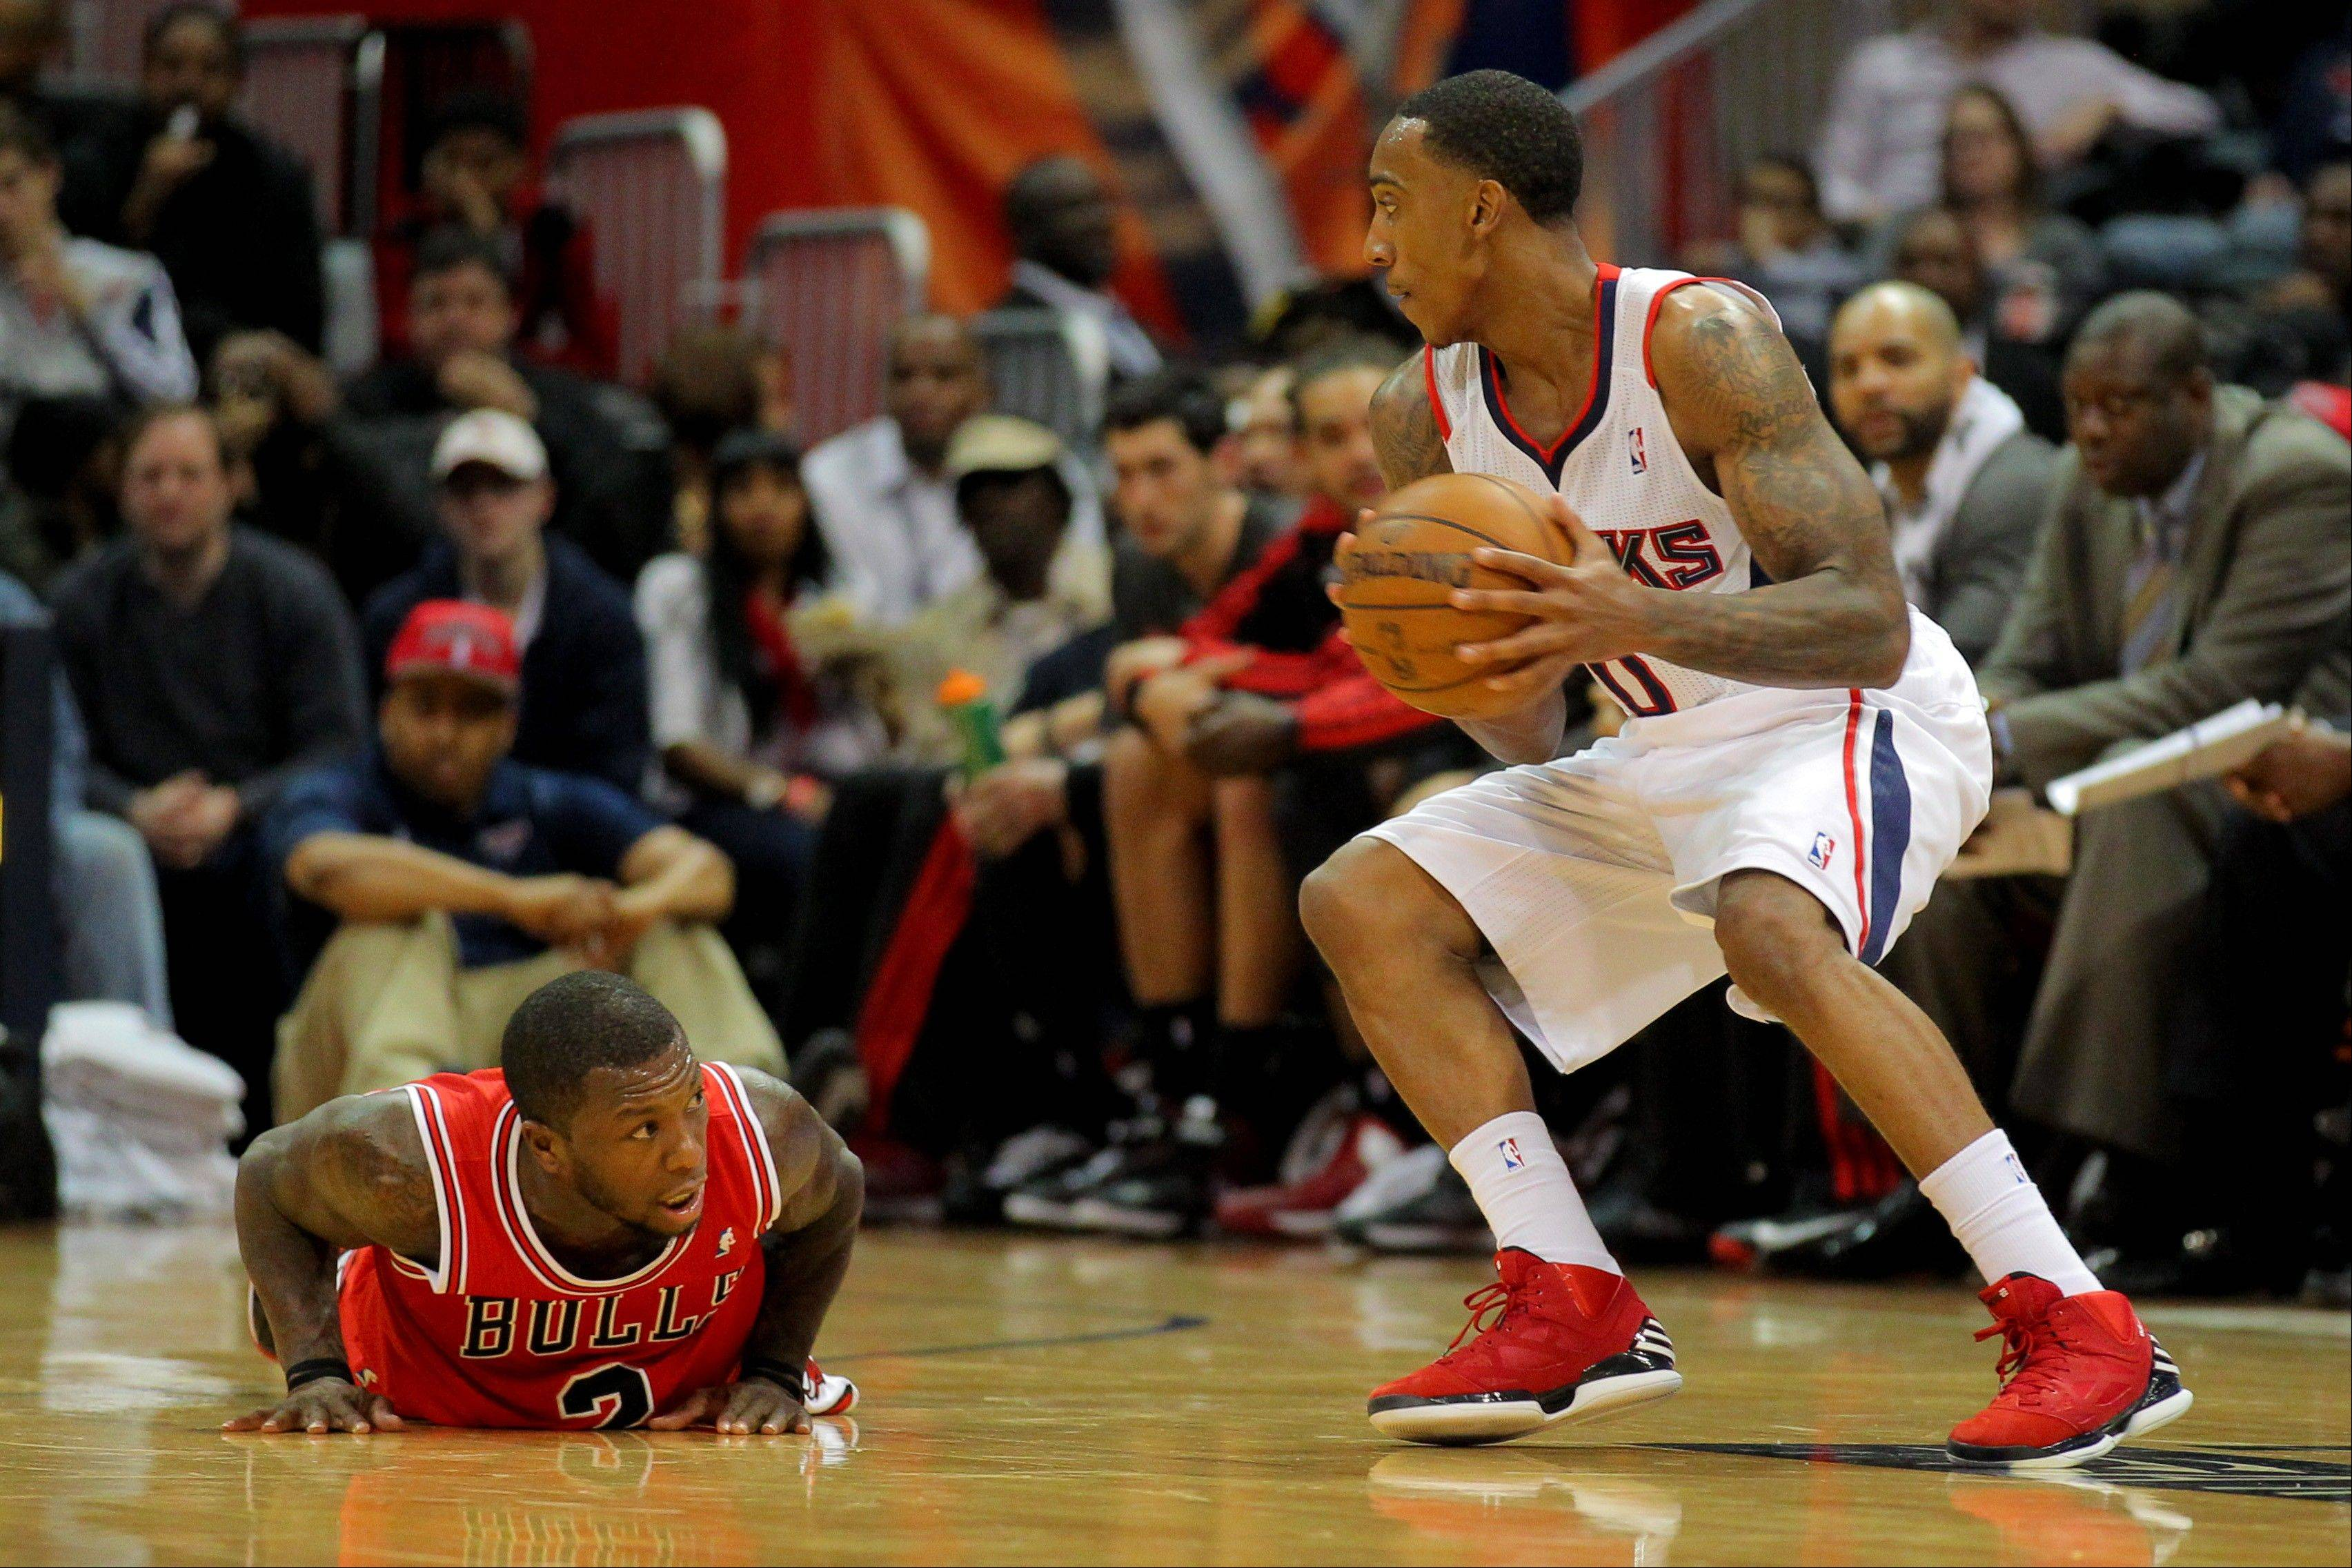 Chicago Bulls guard Nate Robinson (2) falls as Atlanta Hawks guard Jeff Teague (0) recovers the ball in the second half of an NBA basketball game, Saturday, Dec. 22, 2012, in Atlanta. The Hawks won 92-75 (AP Photo/Todd Kirkland)